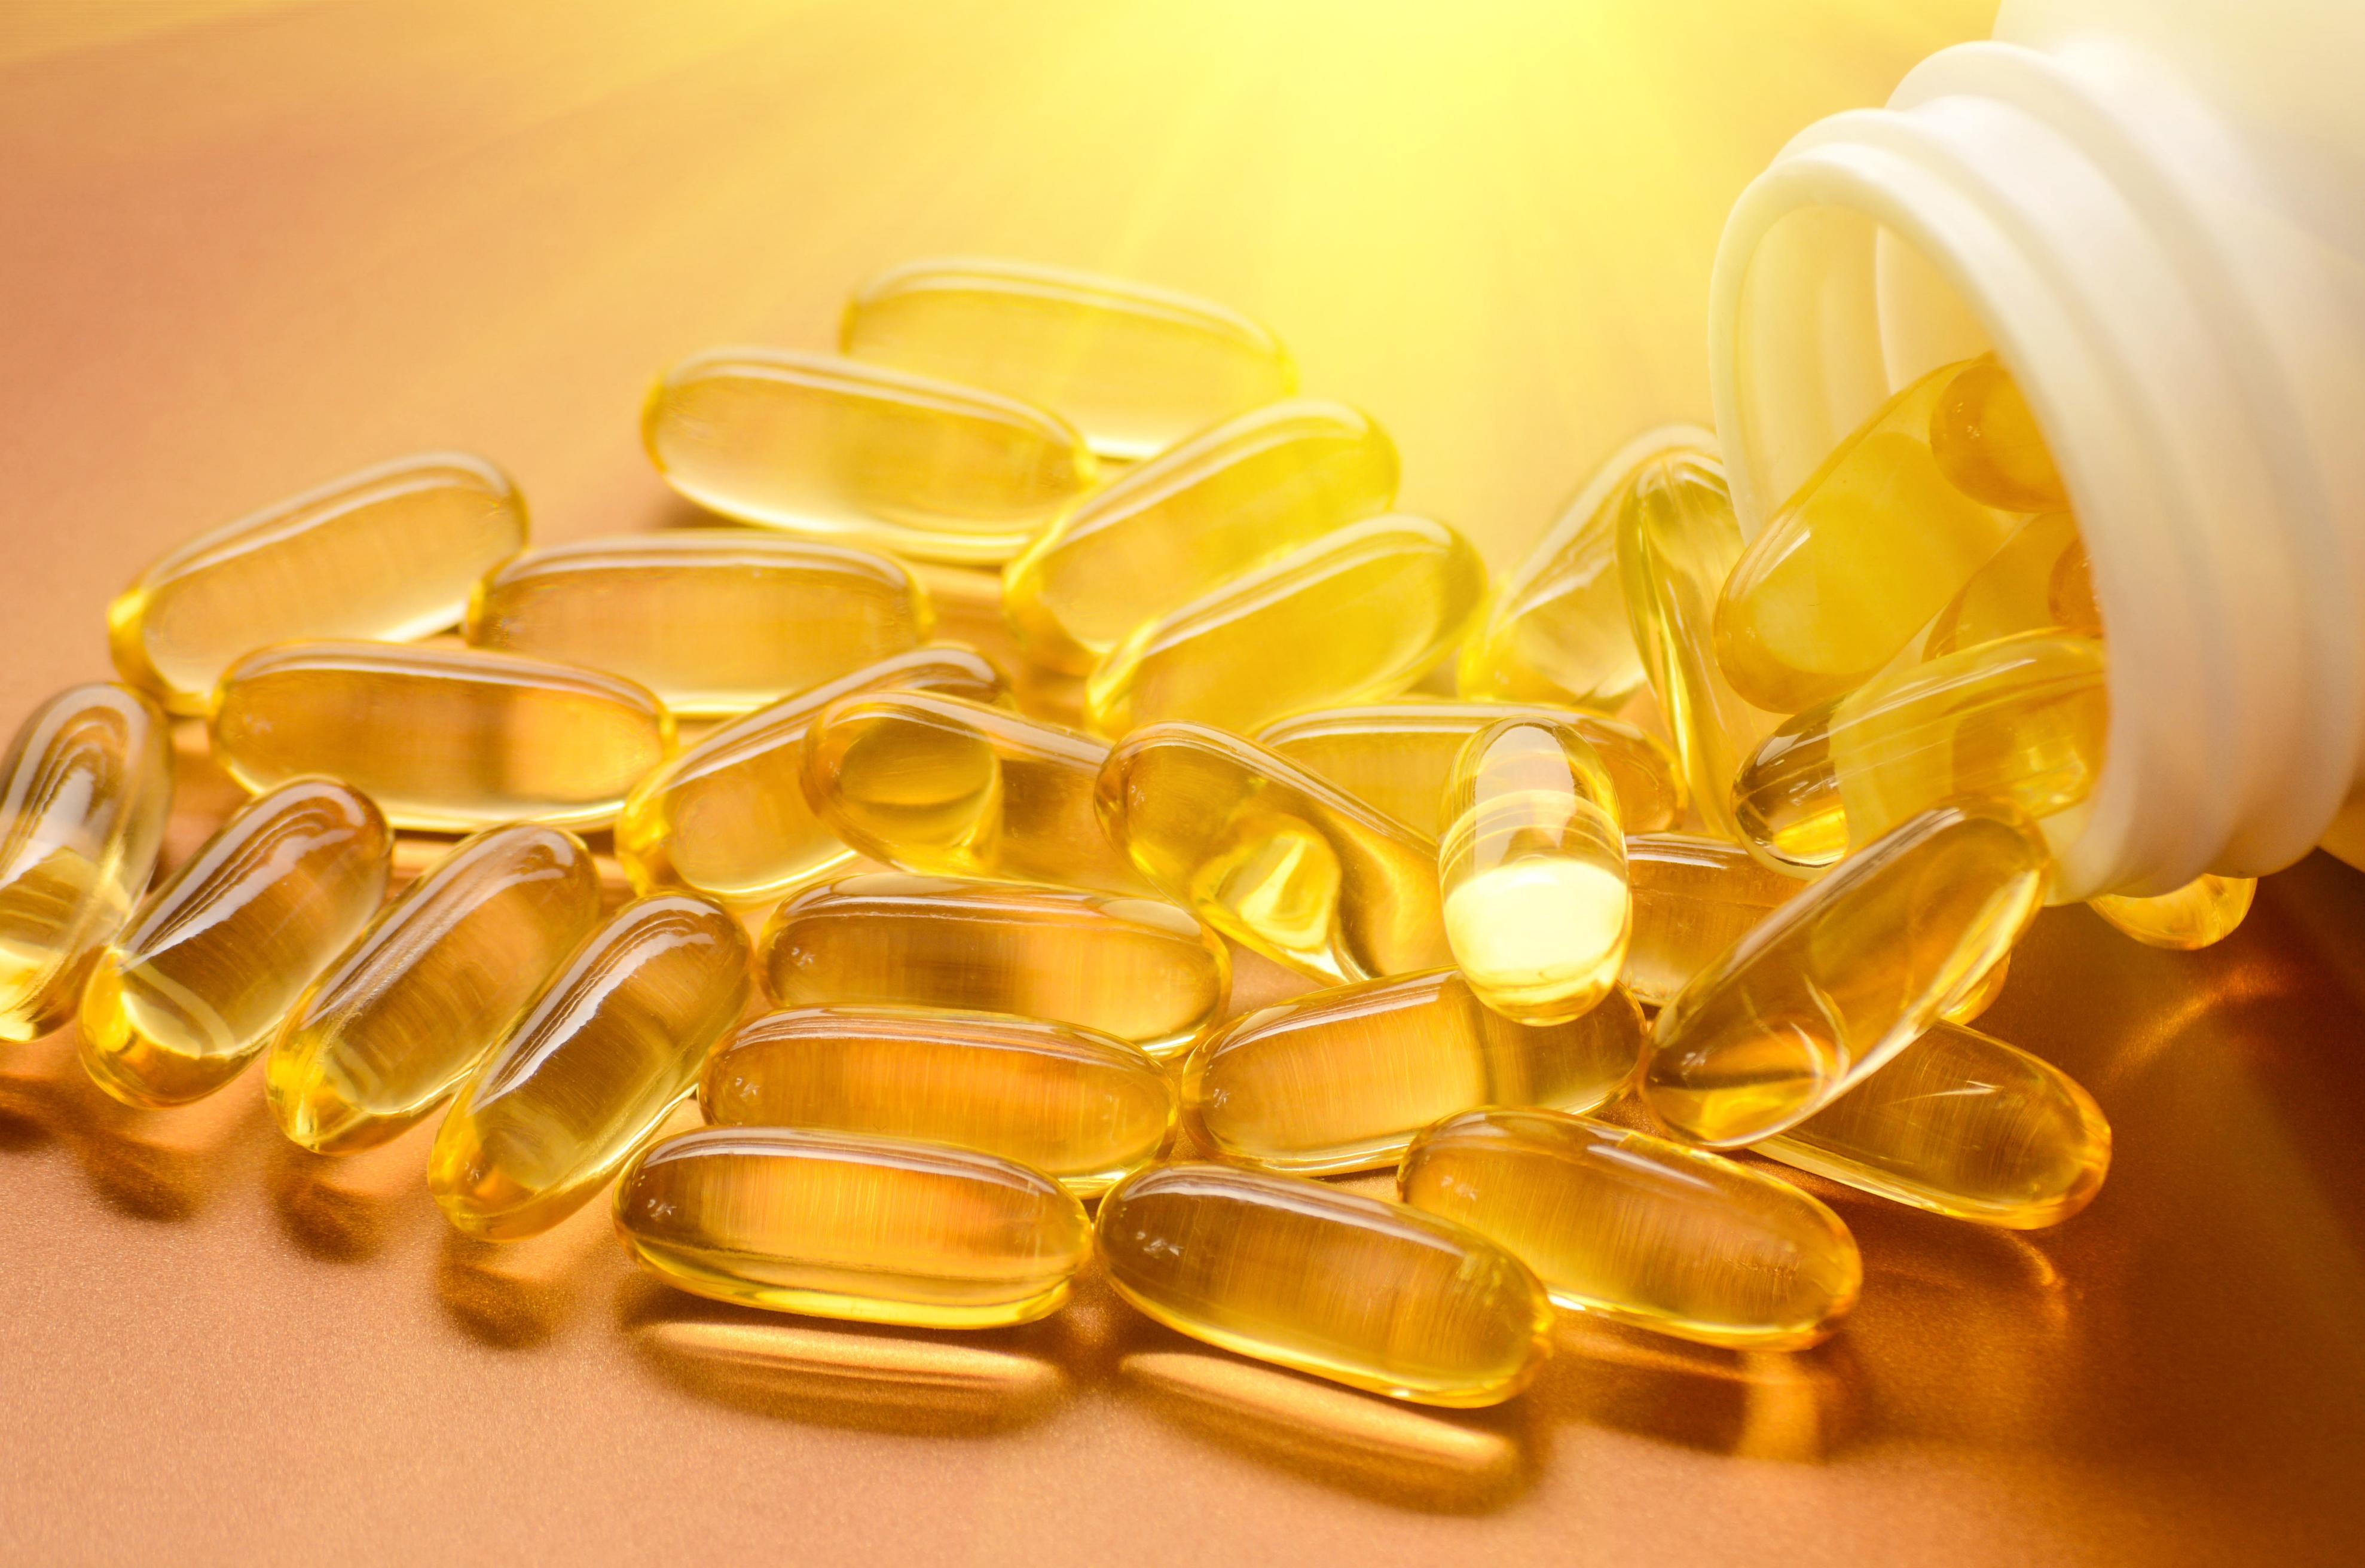 Mega-dosing vitamin D: Doctor-prescribed 50,000 IU vitamin D may be